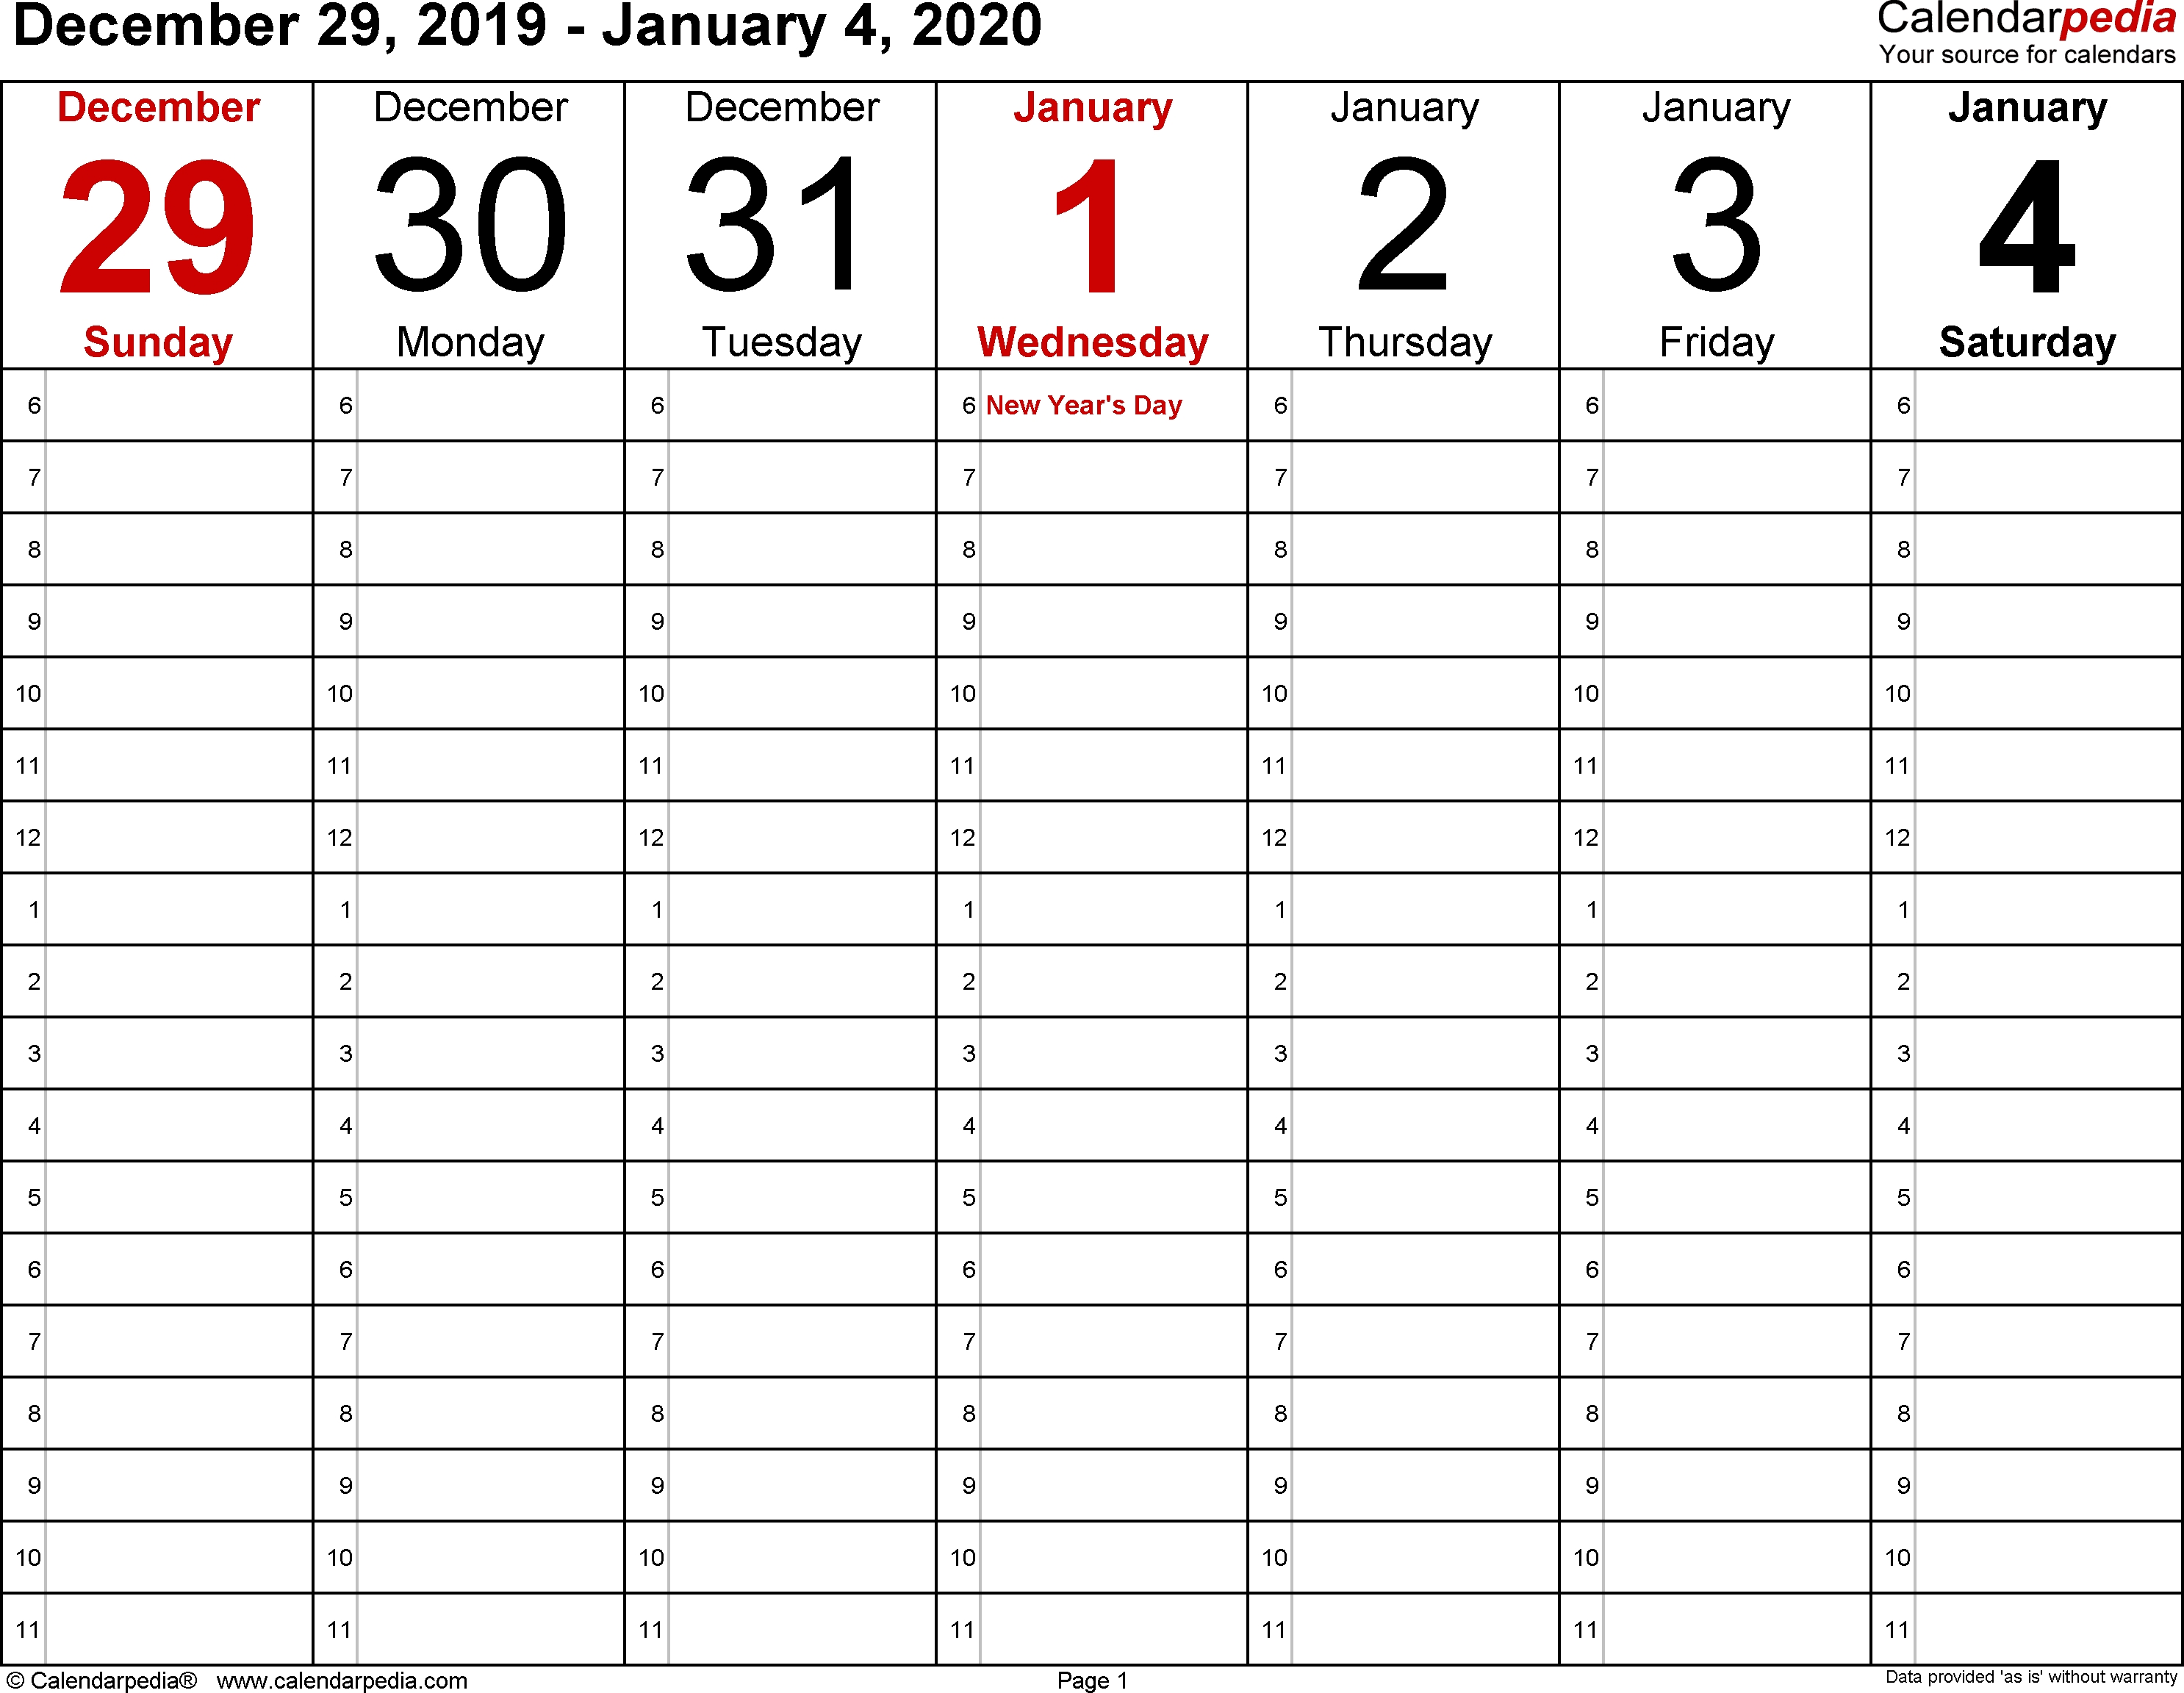 Weekly Calendar 2020 For Word - 12 Free Printable Templates  Calendar To Write On 2020